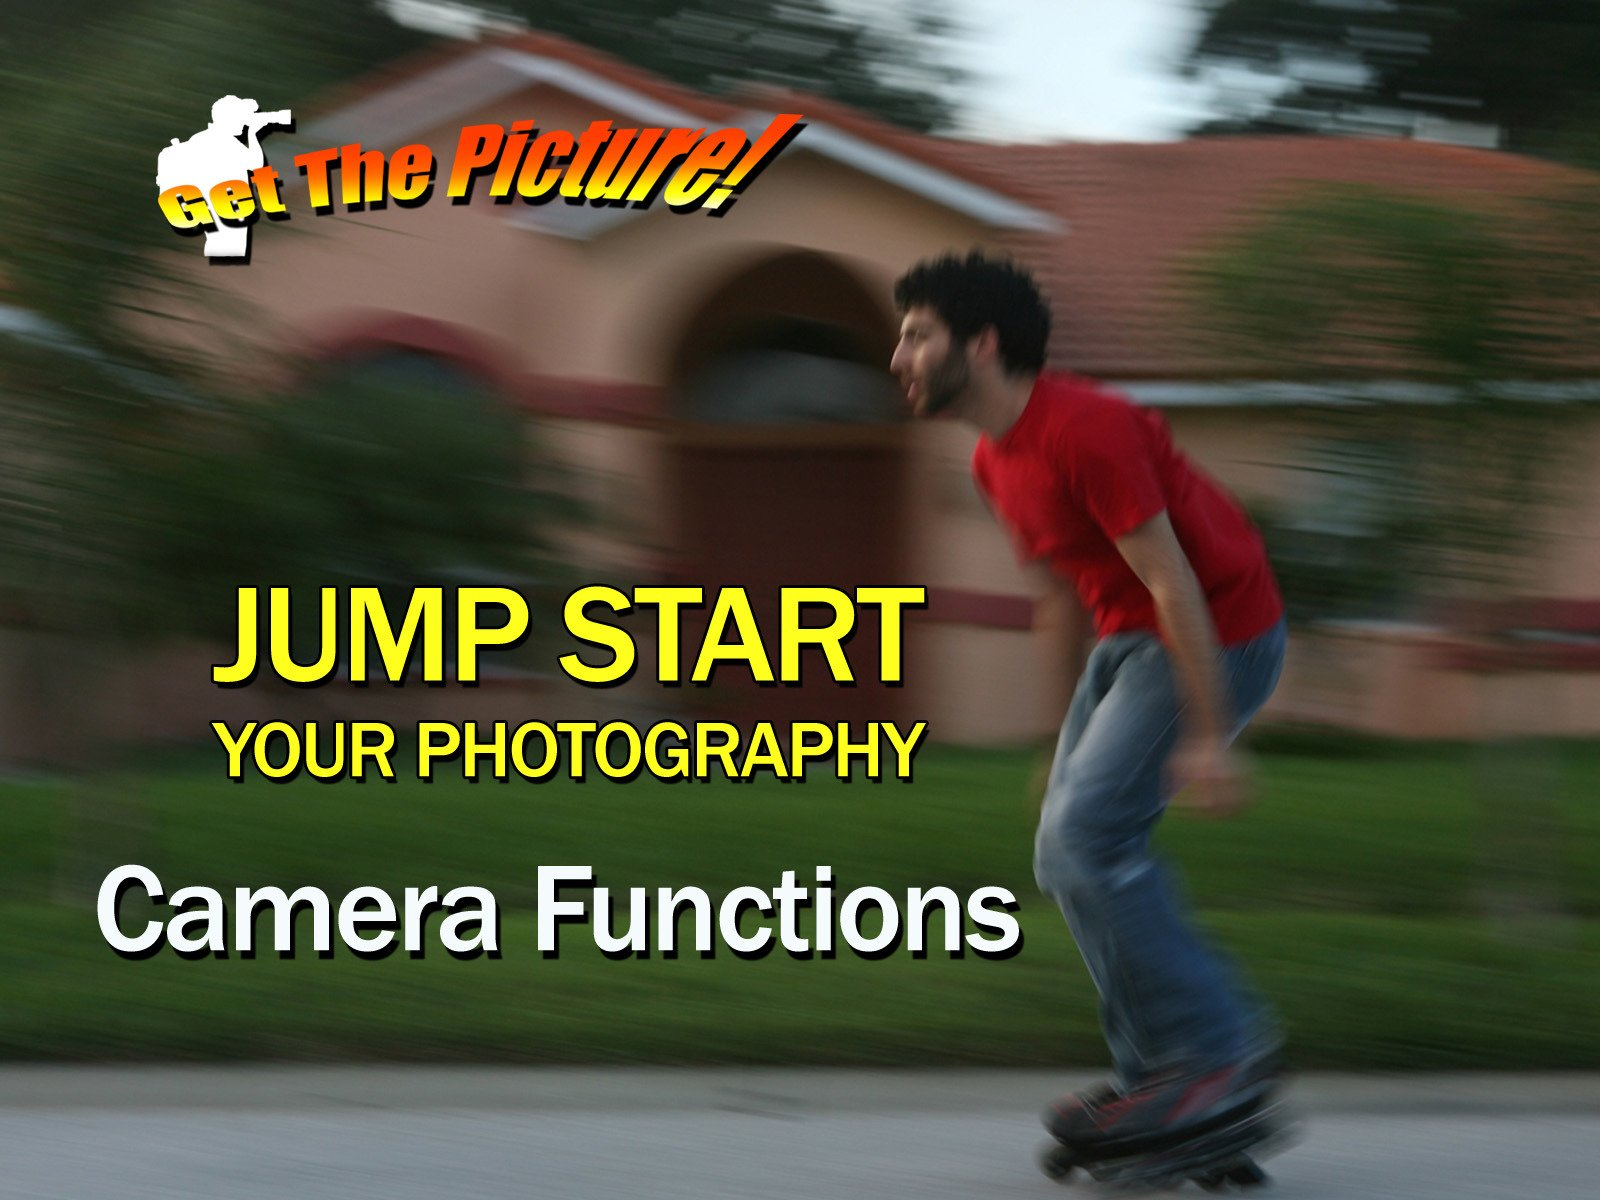 Camera Functions